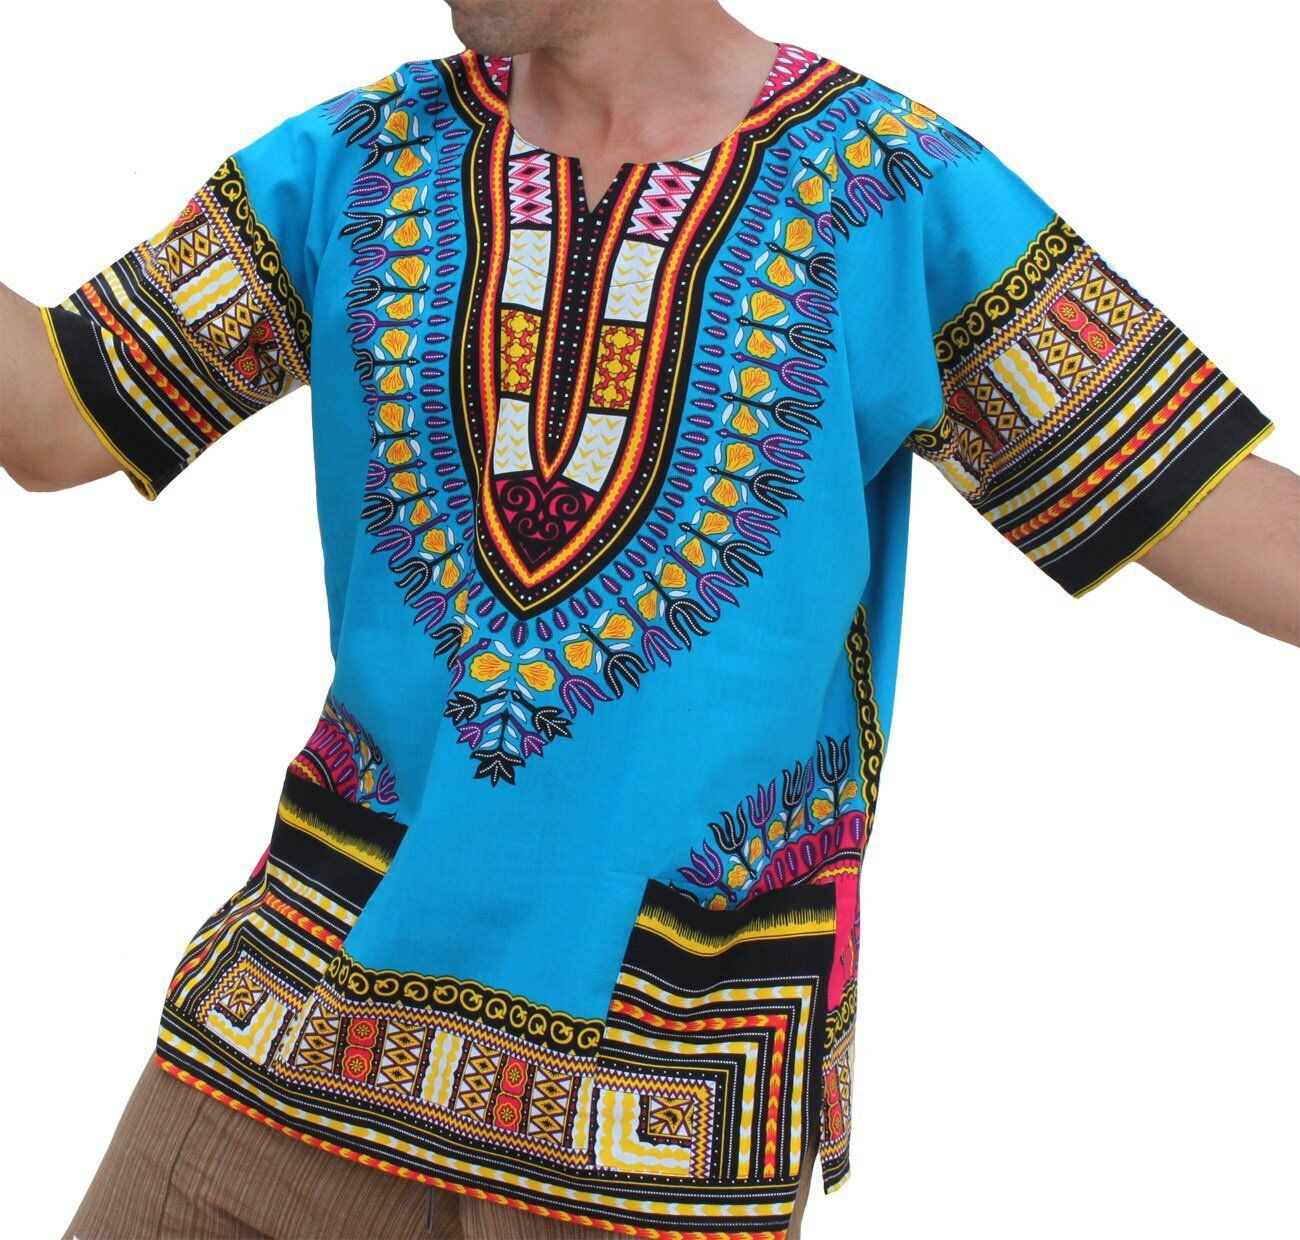 8f99af28e768e 2019 African Dashiki New Arrival Promotion Polyester Men Bigger Sizes  Printed T-shirts Ethnic plus